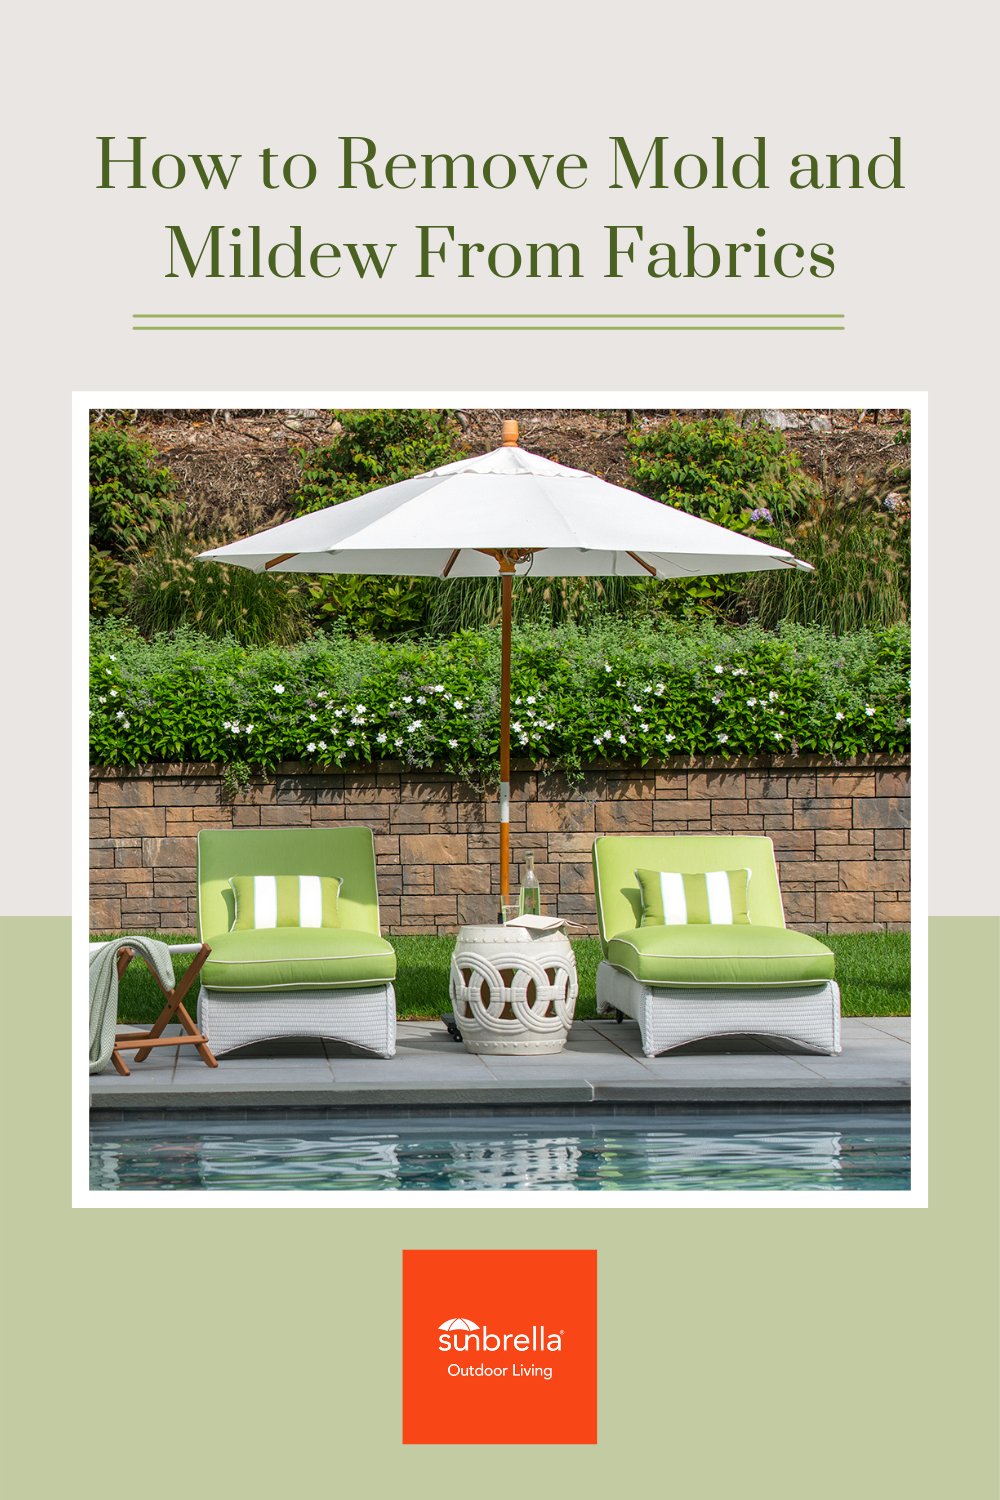 Inspiration How To Clean Mold And Mildew From Sunbrella Fabrics In 2021 Outdoor Cleaning Household Cleaning Tips Mold And Mildew